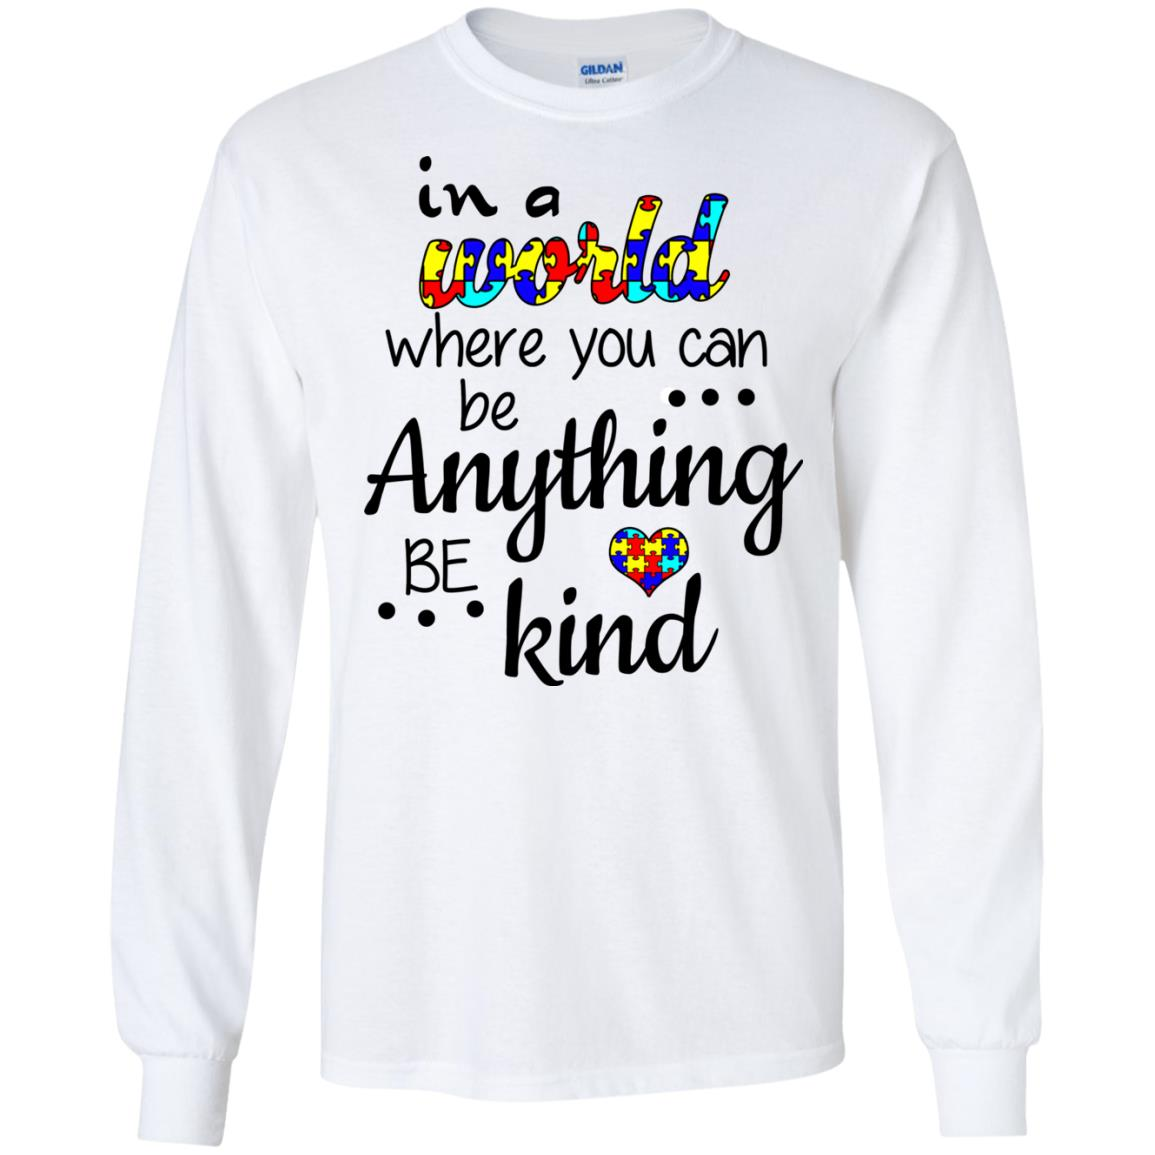 image 667 - Autism: In a World Where You Can Be Anything Be Kind Shirt